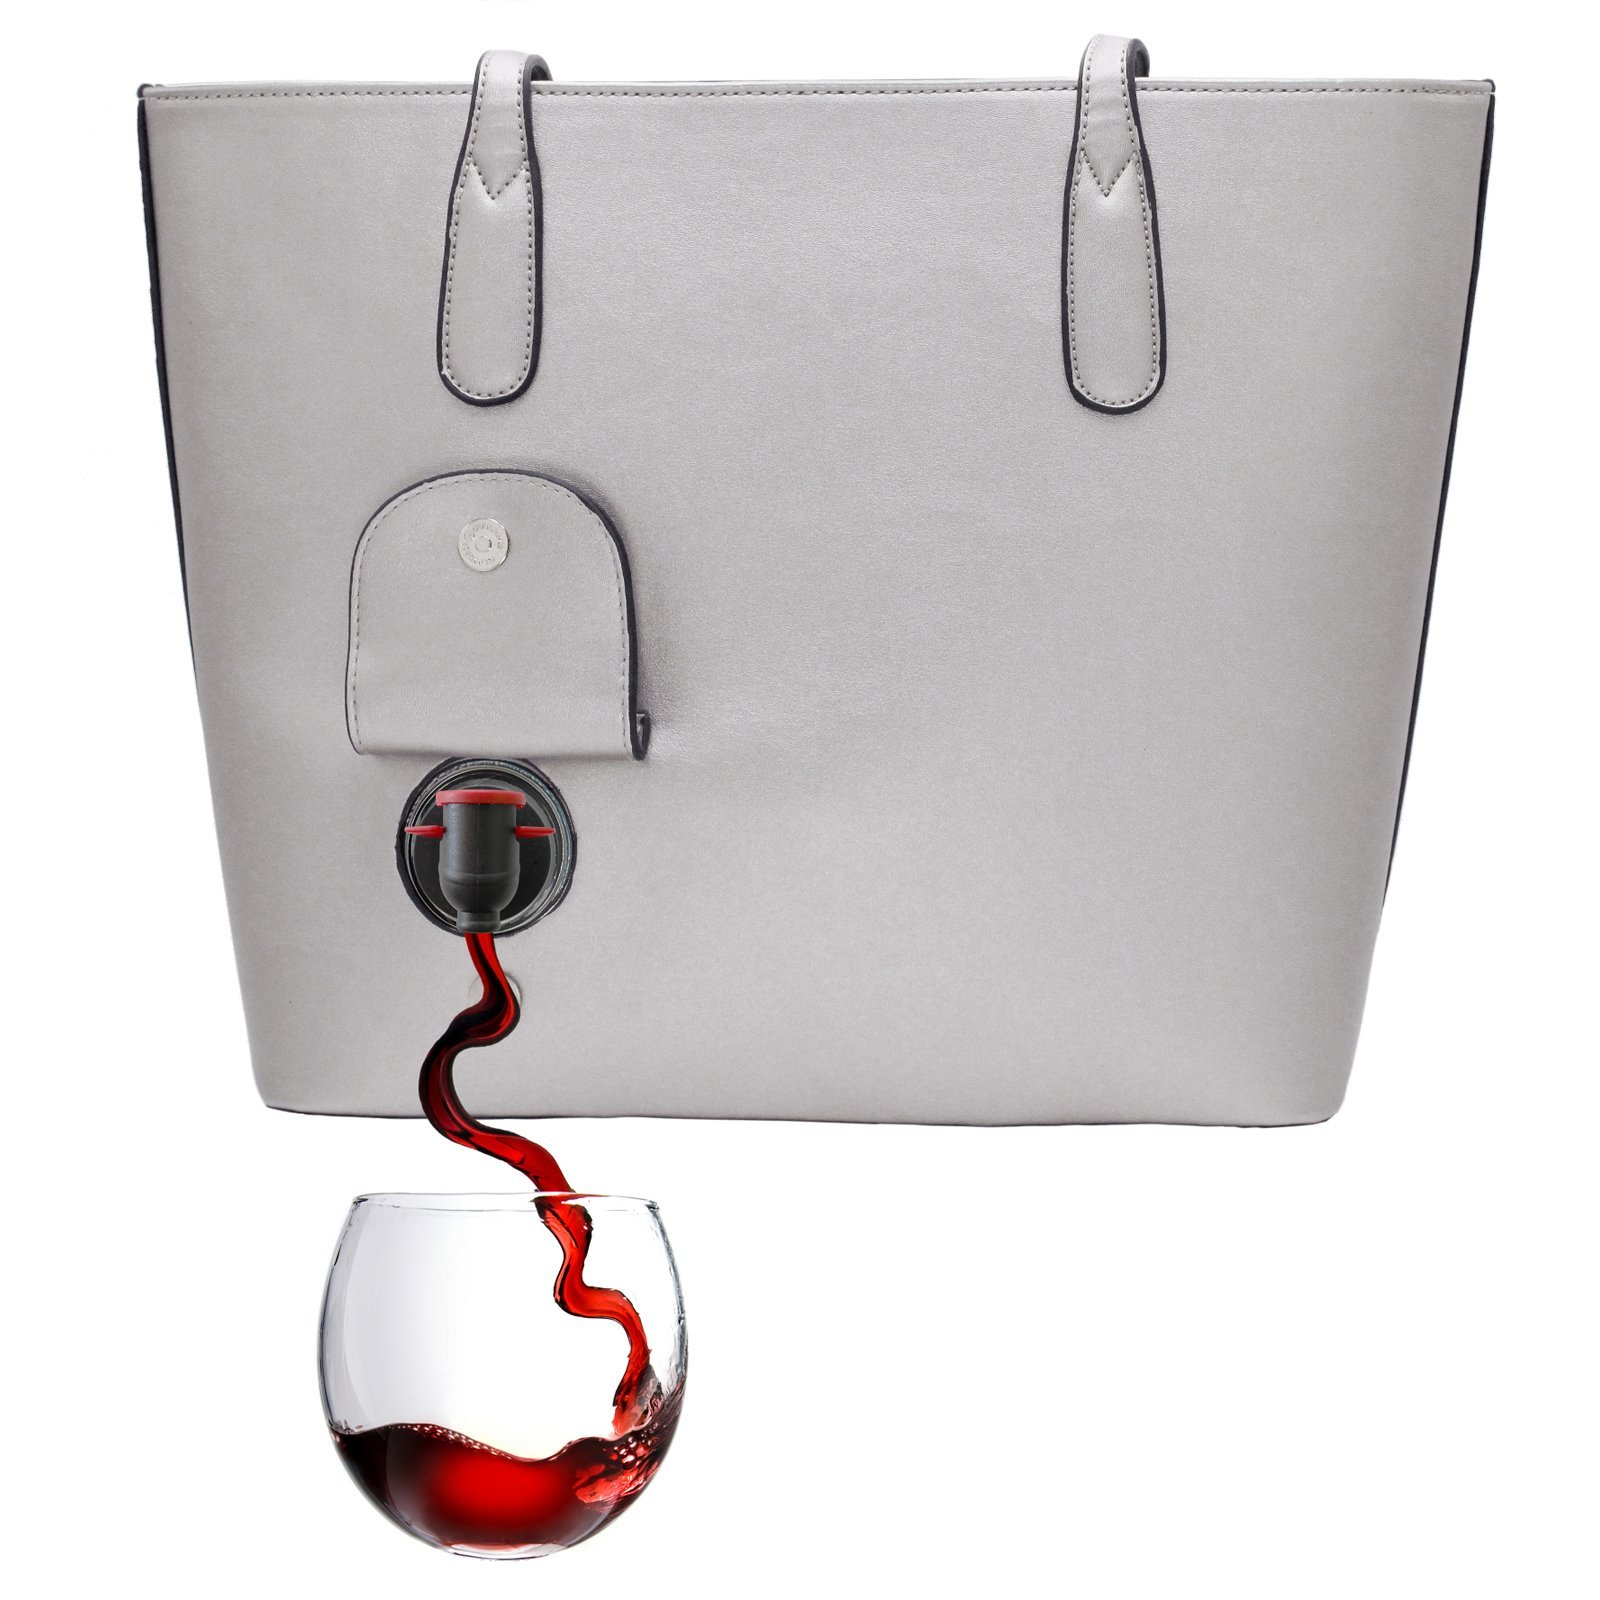 PortoVino Classic Wine Purse (Dove Grey) - Fashionable purse with Hidden, Insulated Compartment, Holds 2 bottles of Wine!